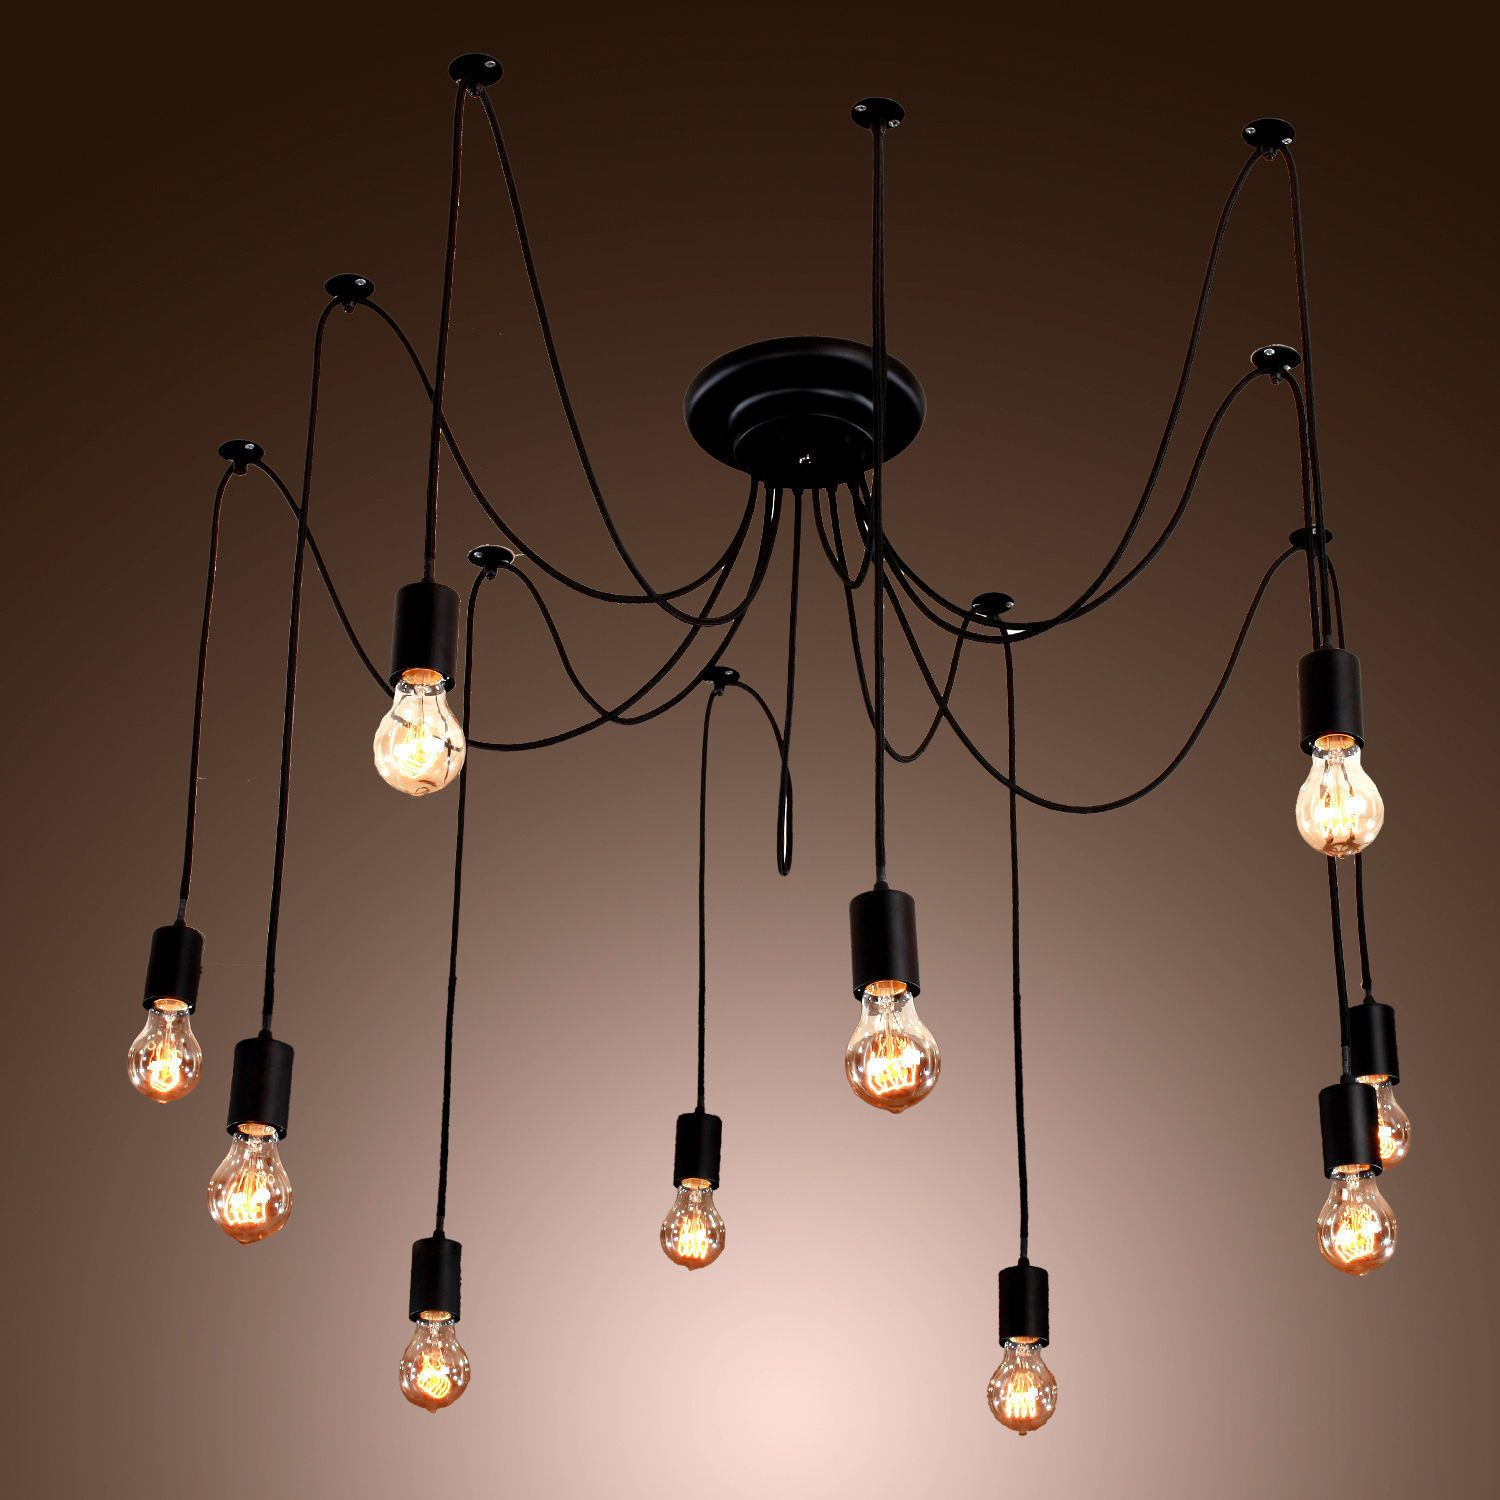 Edison Style 10 Lights Bulb Chandelier Ceiling Light Pendant Lamp